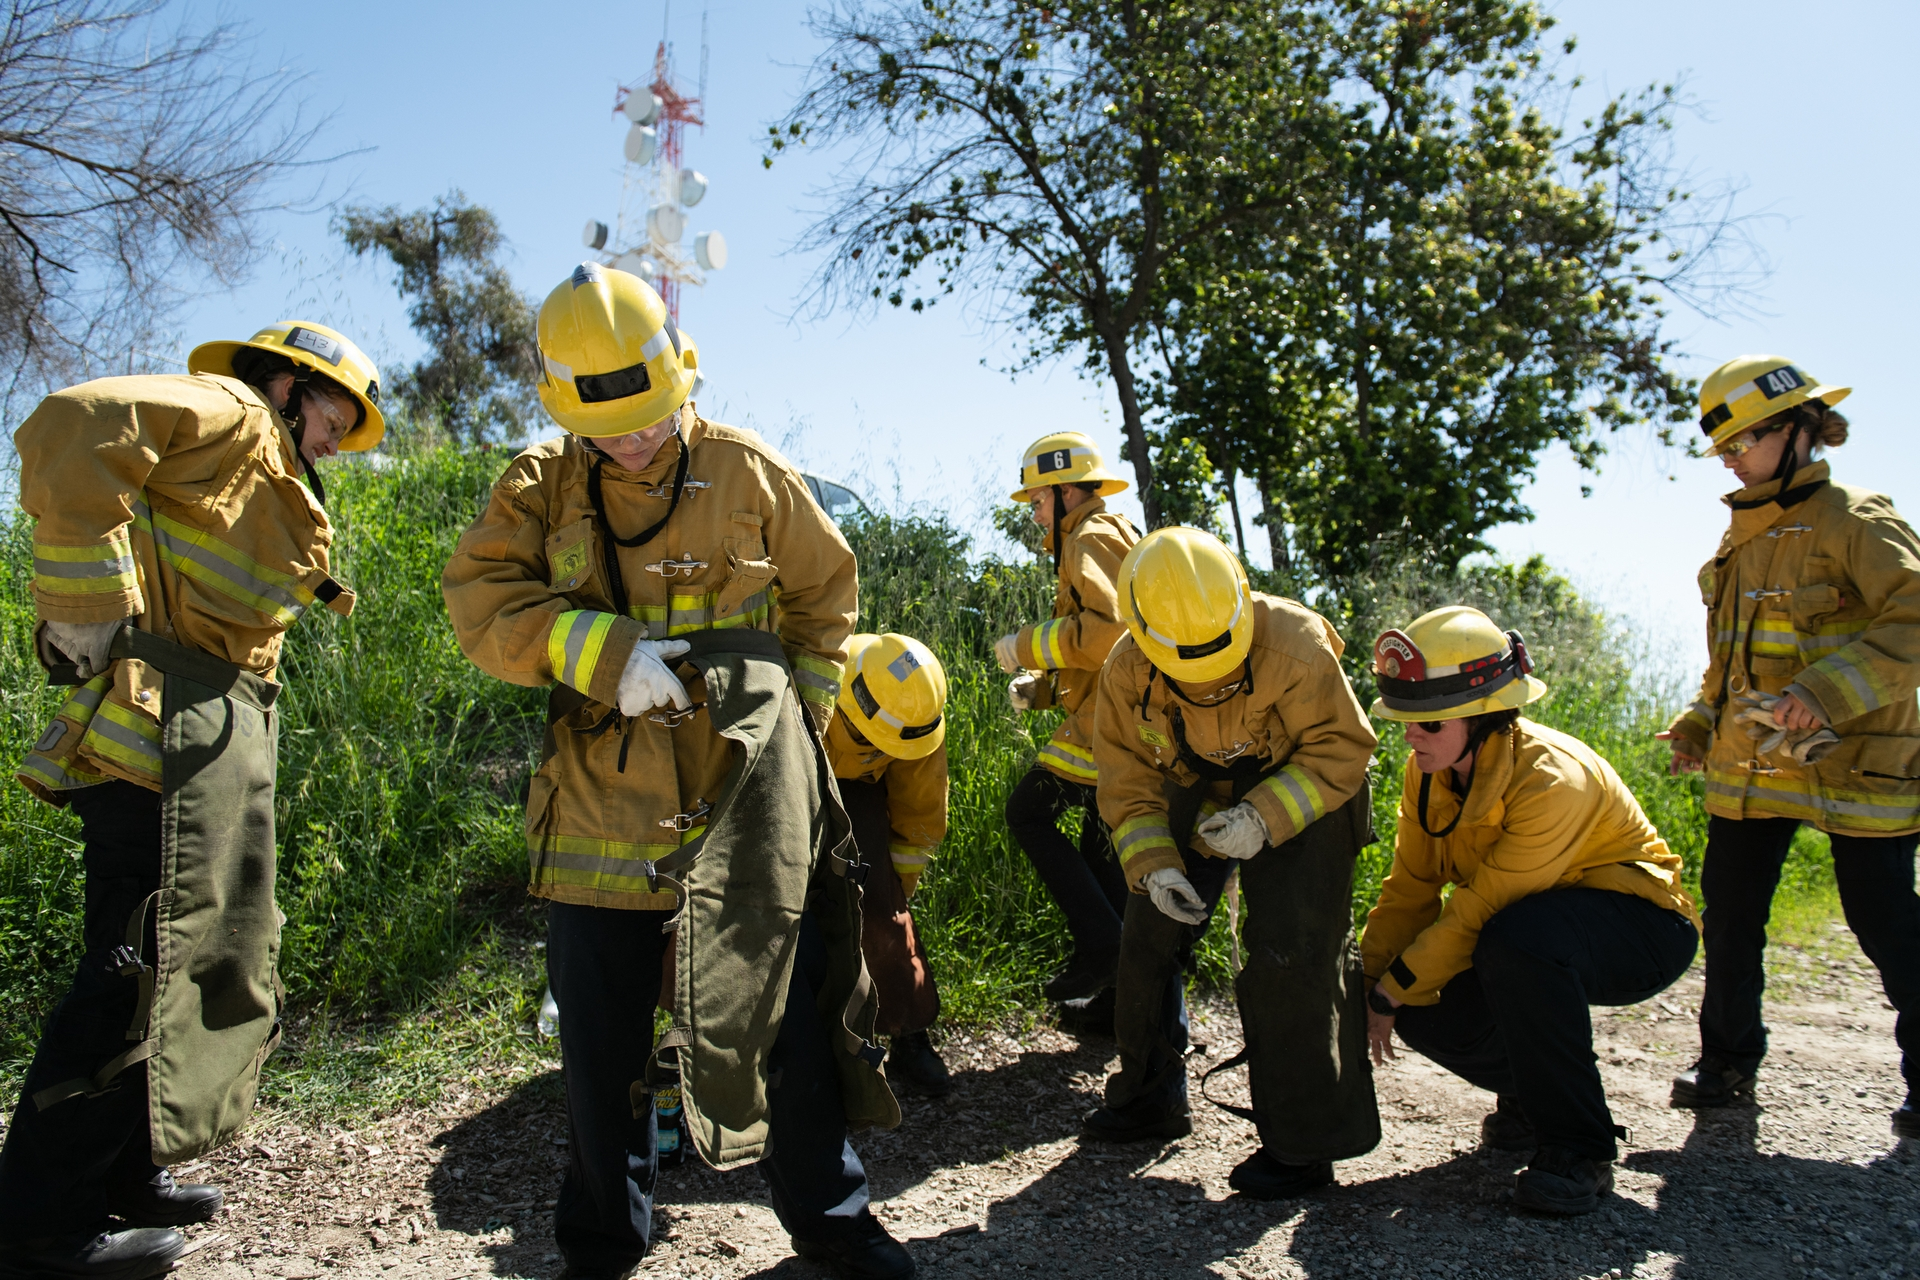 Participants take part in the LACoFD's Women's Fire Prep Academy.